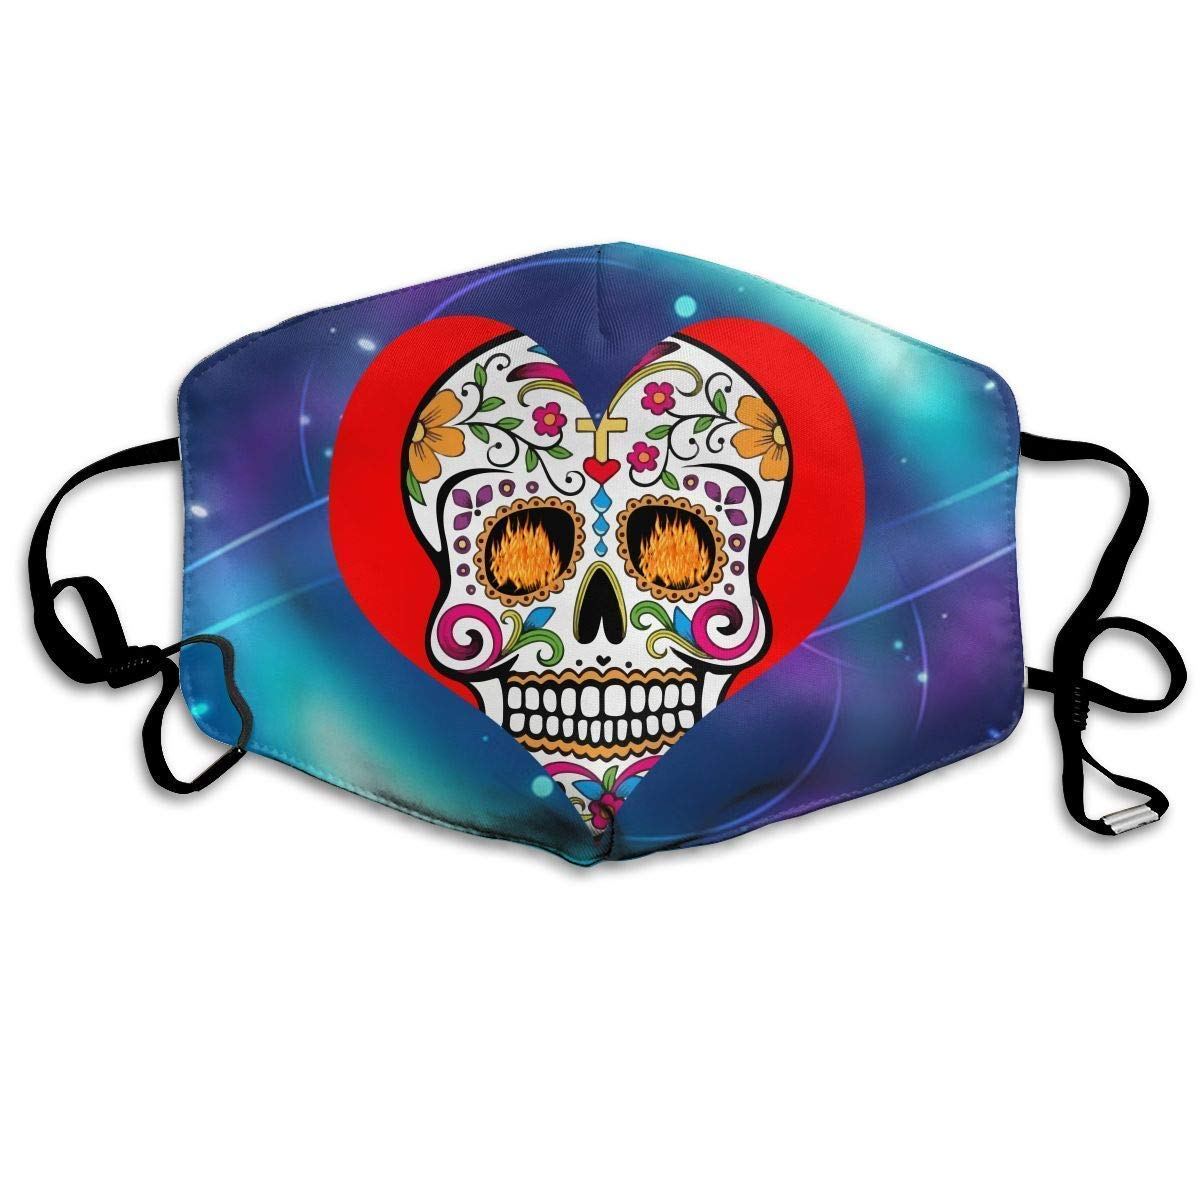 Daawqee Mascarillas, Sugar Skull Heart Colors Unisex Dust Allergy Flu Masks Cover Warm Respirator Germ Protective Breath Breath Healthy Safety Mouth Masks